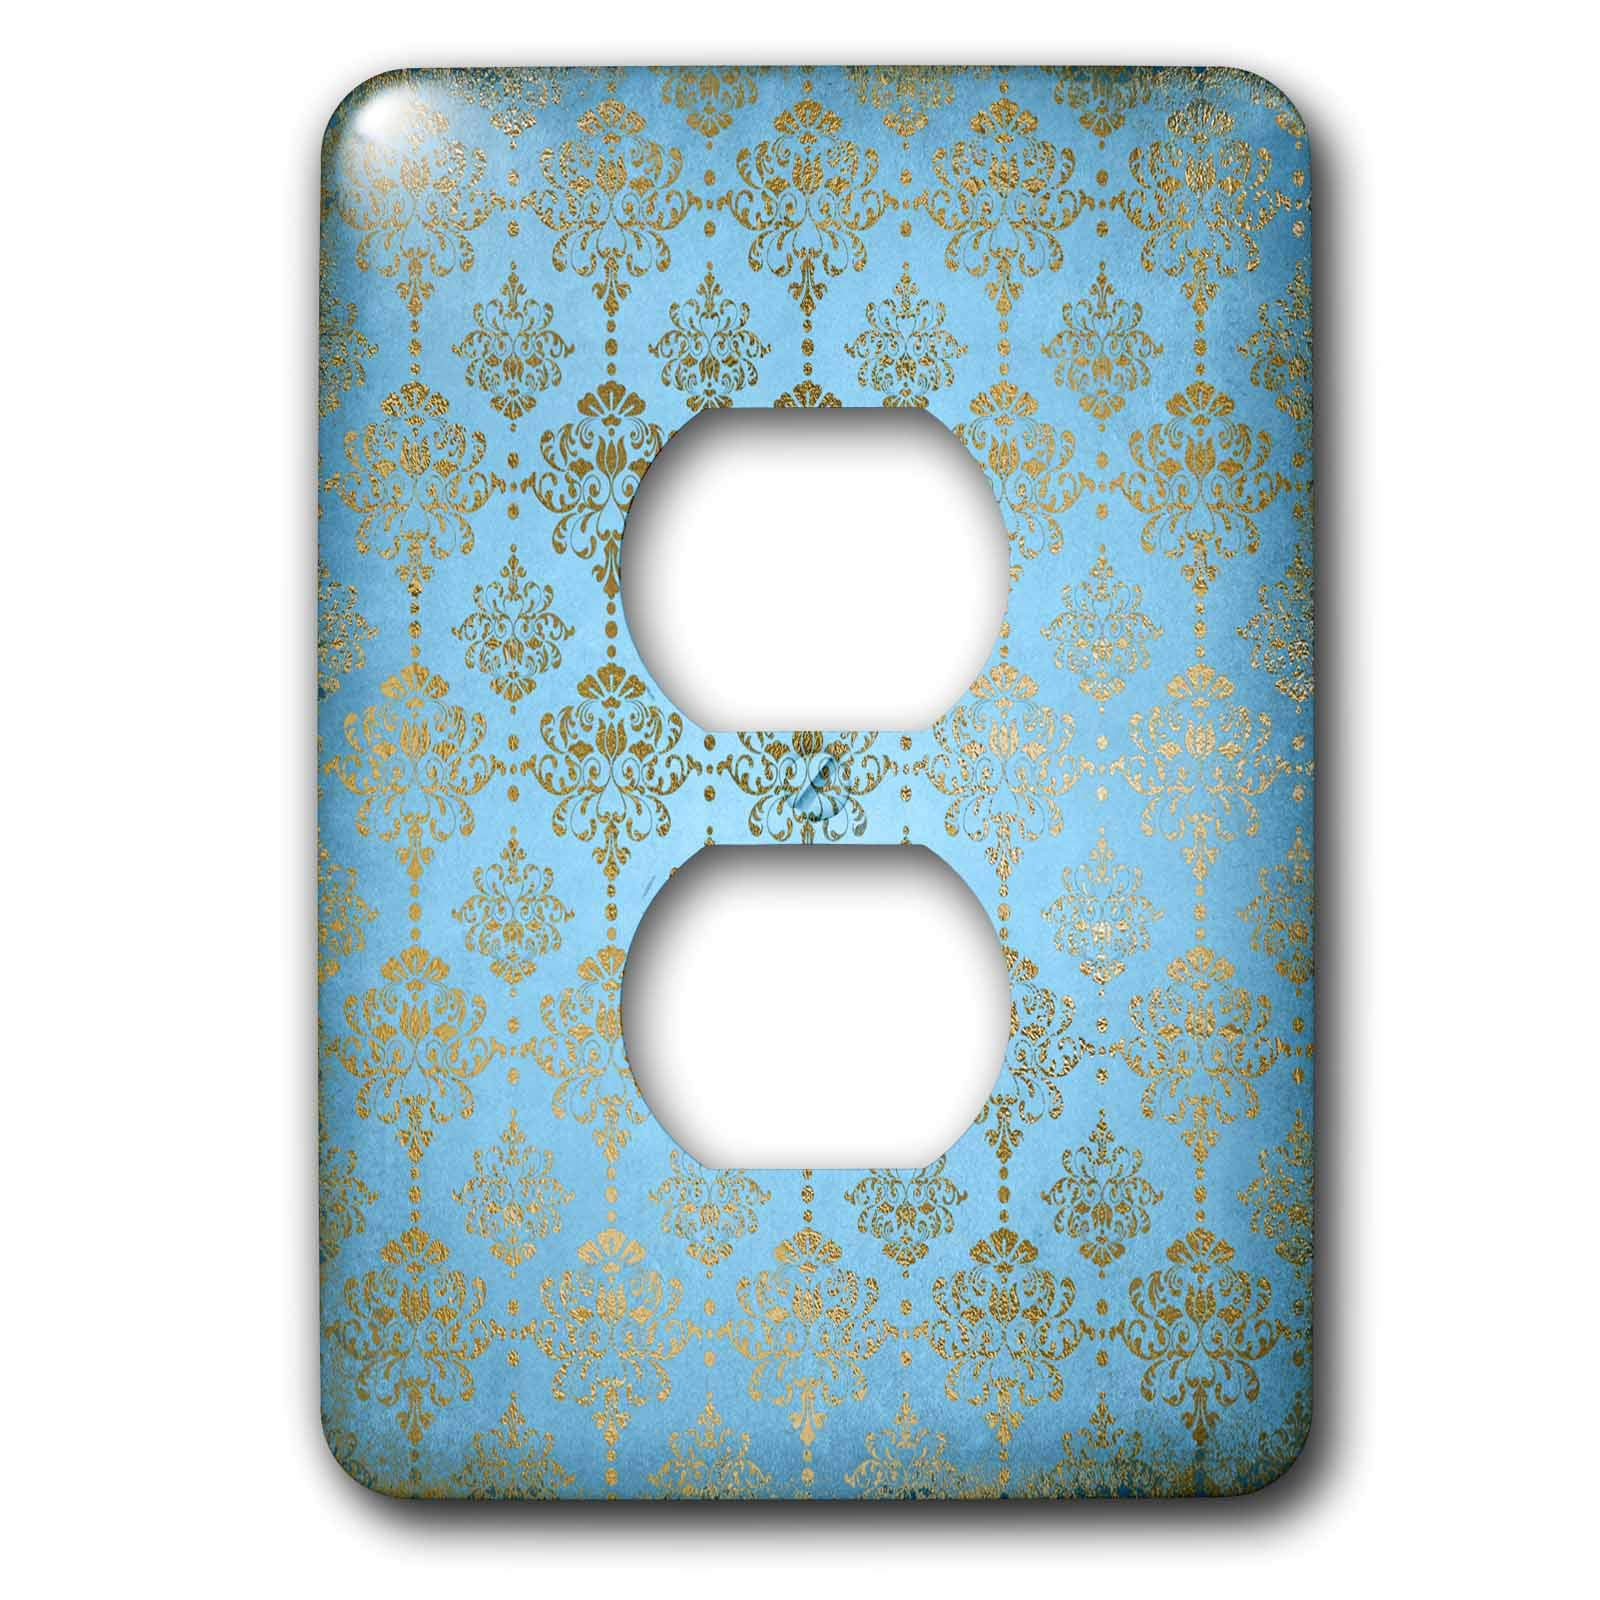 3dRose Uta Naumann Faux Glitter Pattern - Image of Sky Blue and Gold Metal Foil Vintage Luxury Damask Pattern - Light Switch Covers - 2 plug outlet cover (lsp_290167_6)